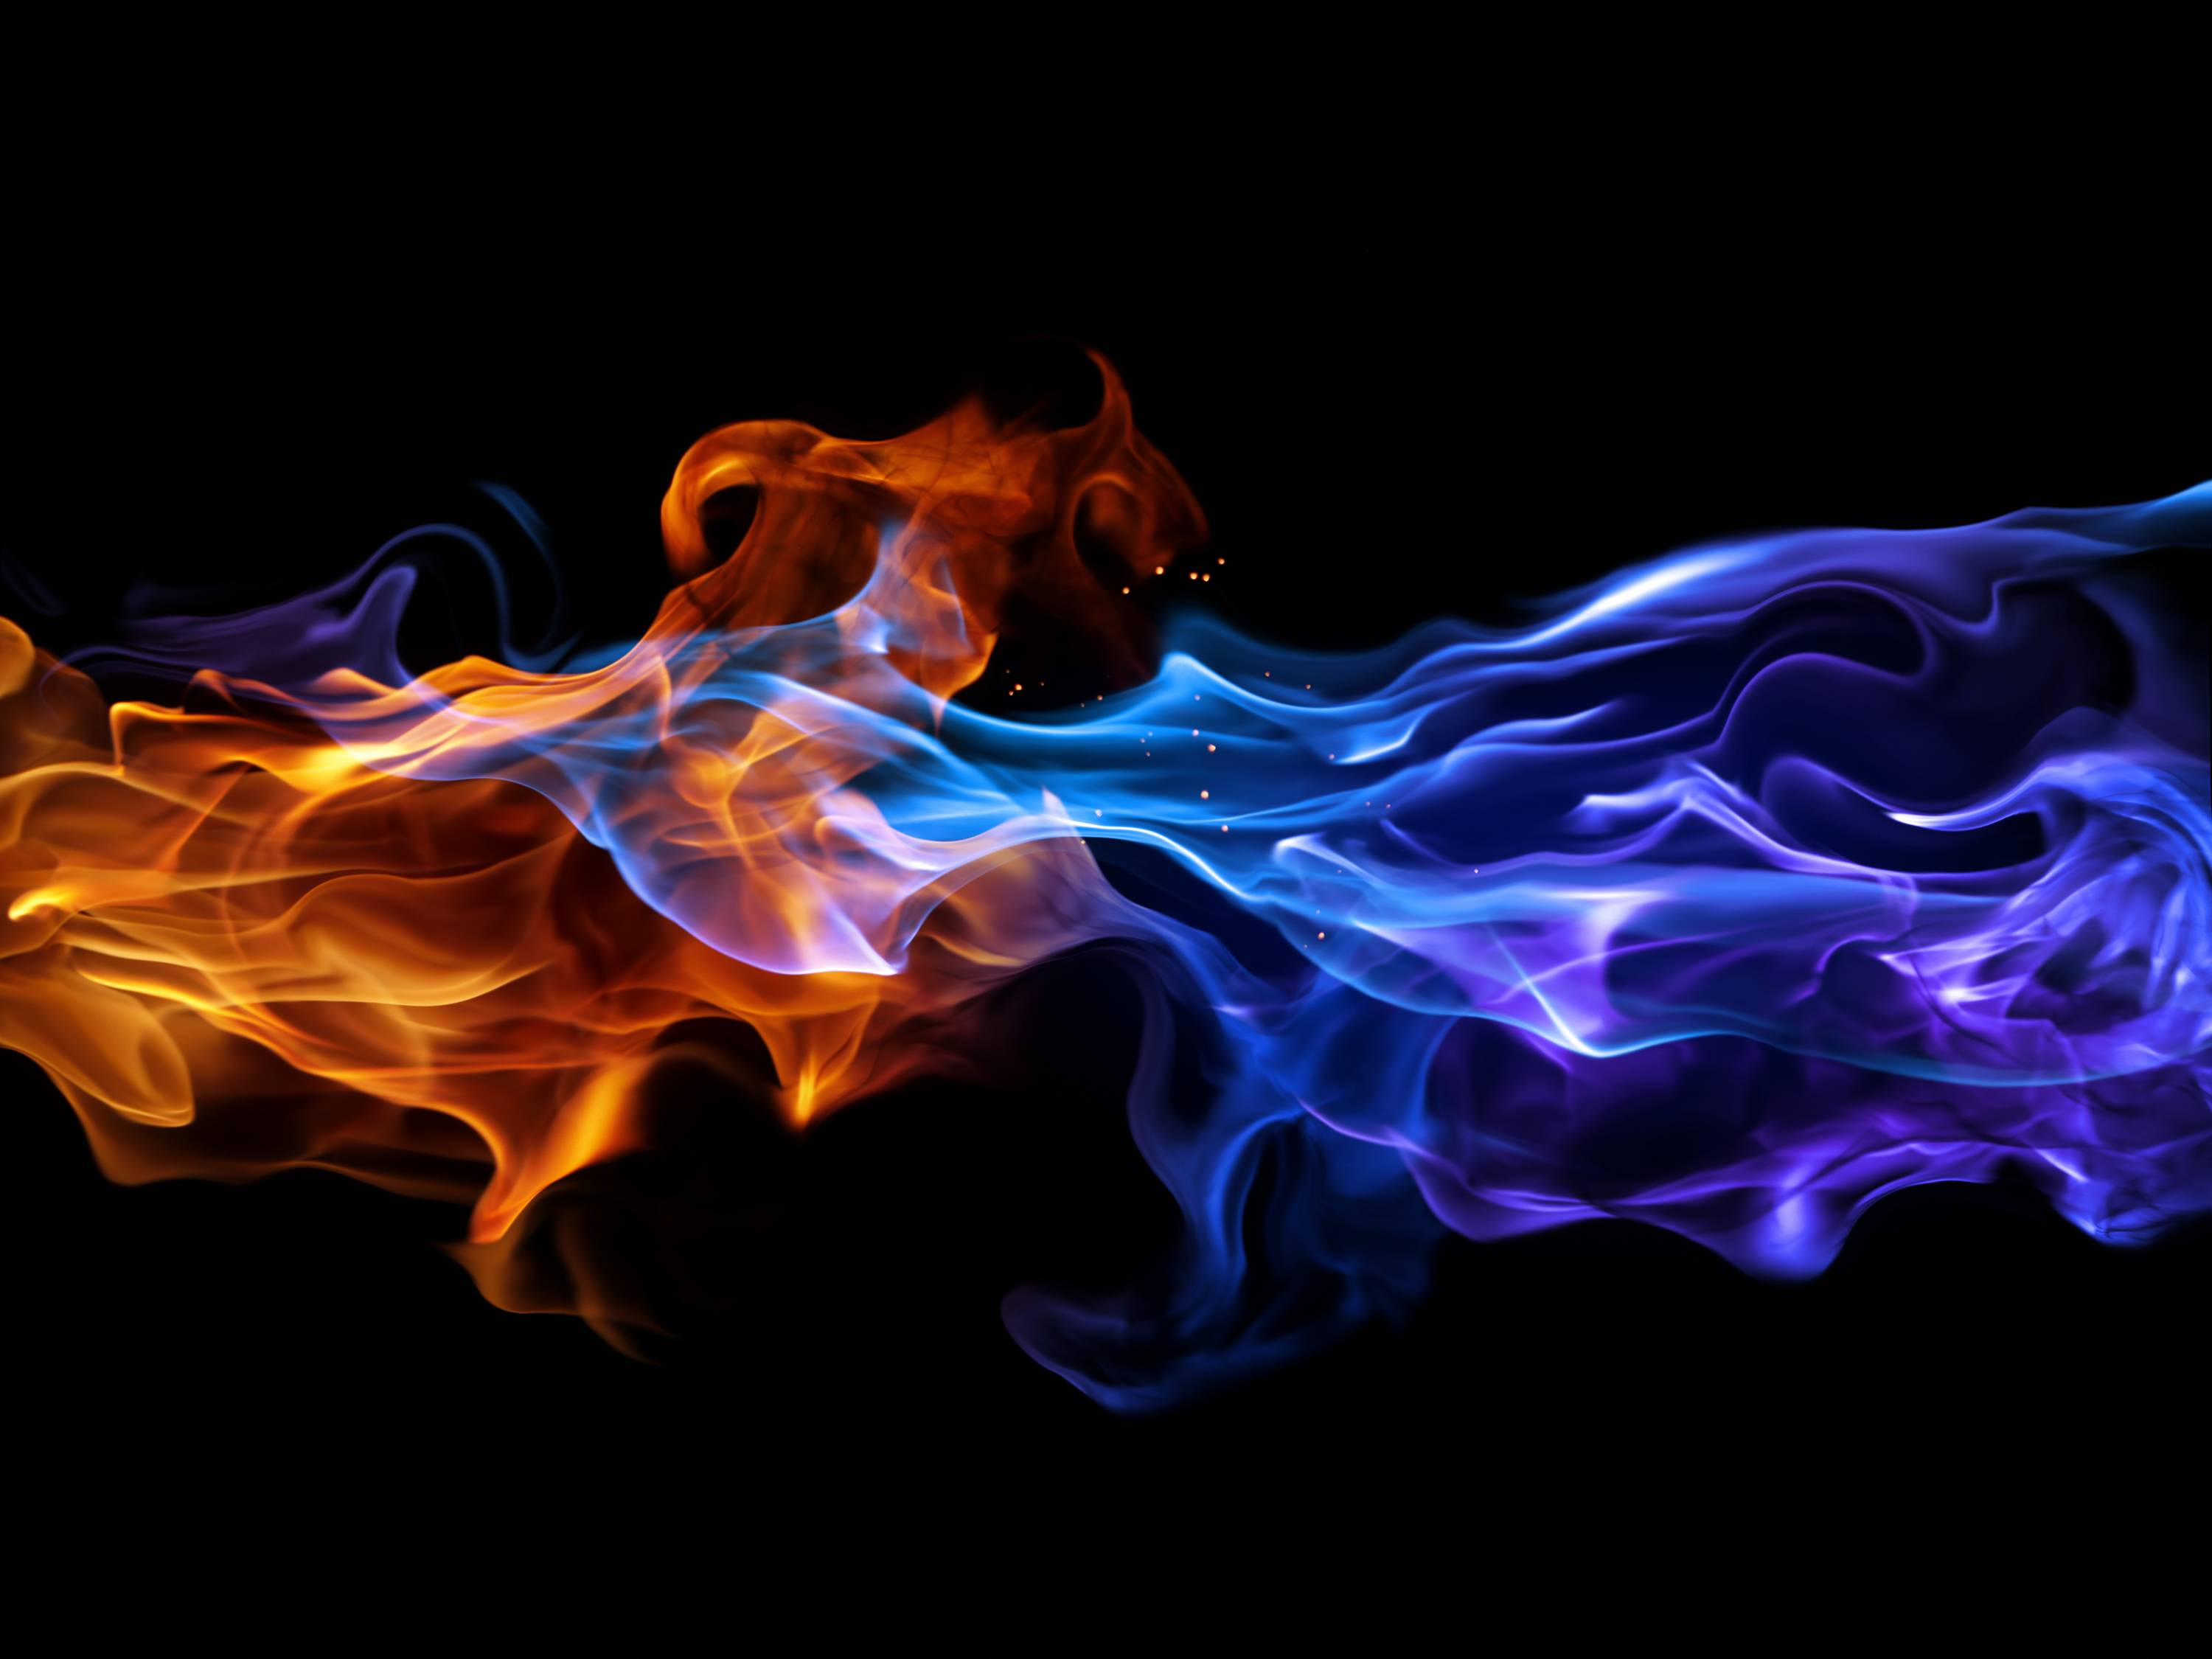 Blue Fire Wallpaper Images & Pictures - Becuo